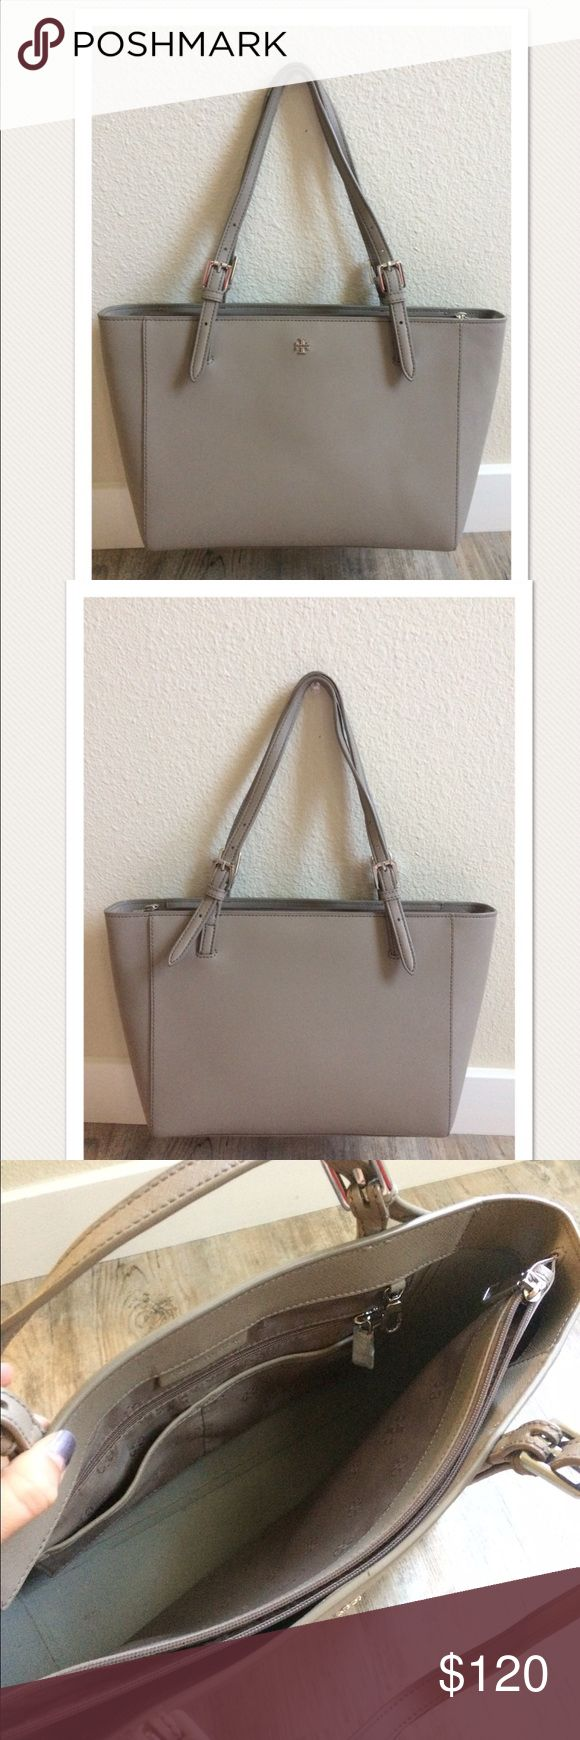 """$245 Tory Burch Small 'York Buckle Tote' in Gray High end department store customer return. Retails for $245 + tax  Very pretty gray Silver tone hardware Main center zip  Measures approximately: total length across 15.5"""" inside depth 8.75""""  Normal signs of wear and light marks on the leather. A a few small spots on the bottoms and front. A small discolored patch under the bottom. Normal wear on inside lining. The straps have some peeling/wear on the leather. Refer to photos. PRICED TO SELL…"""